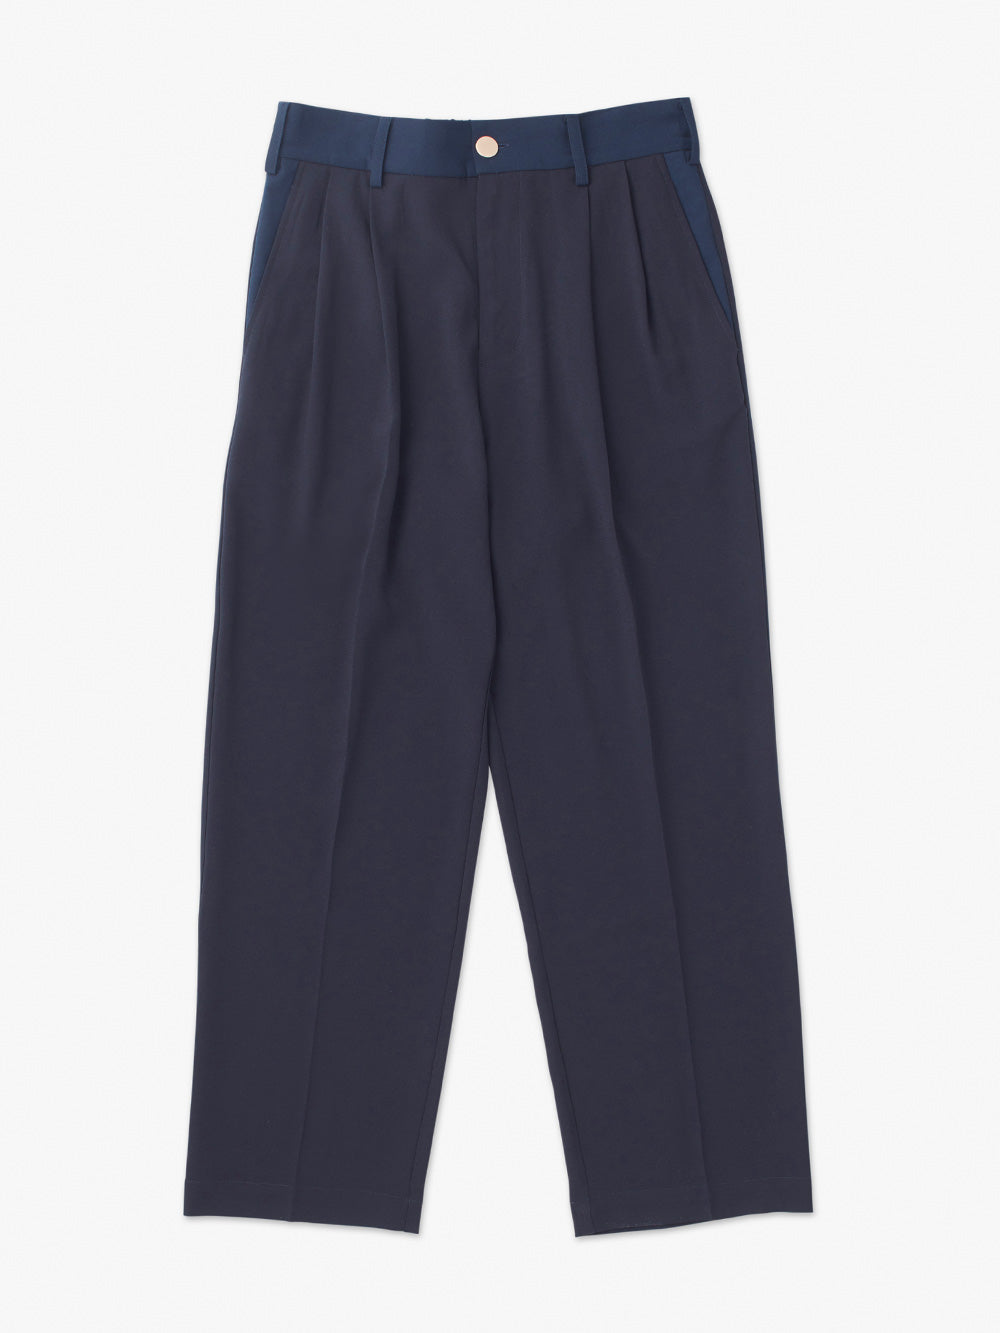 STRAIGHT TUCK PANTS<br>DARK NAVY x LIGHT NAVY